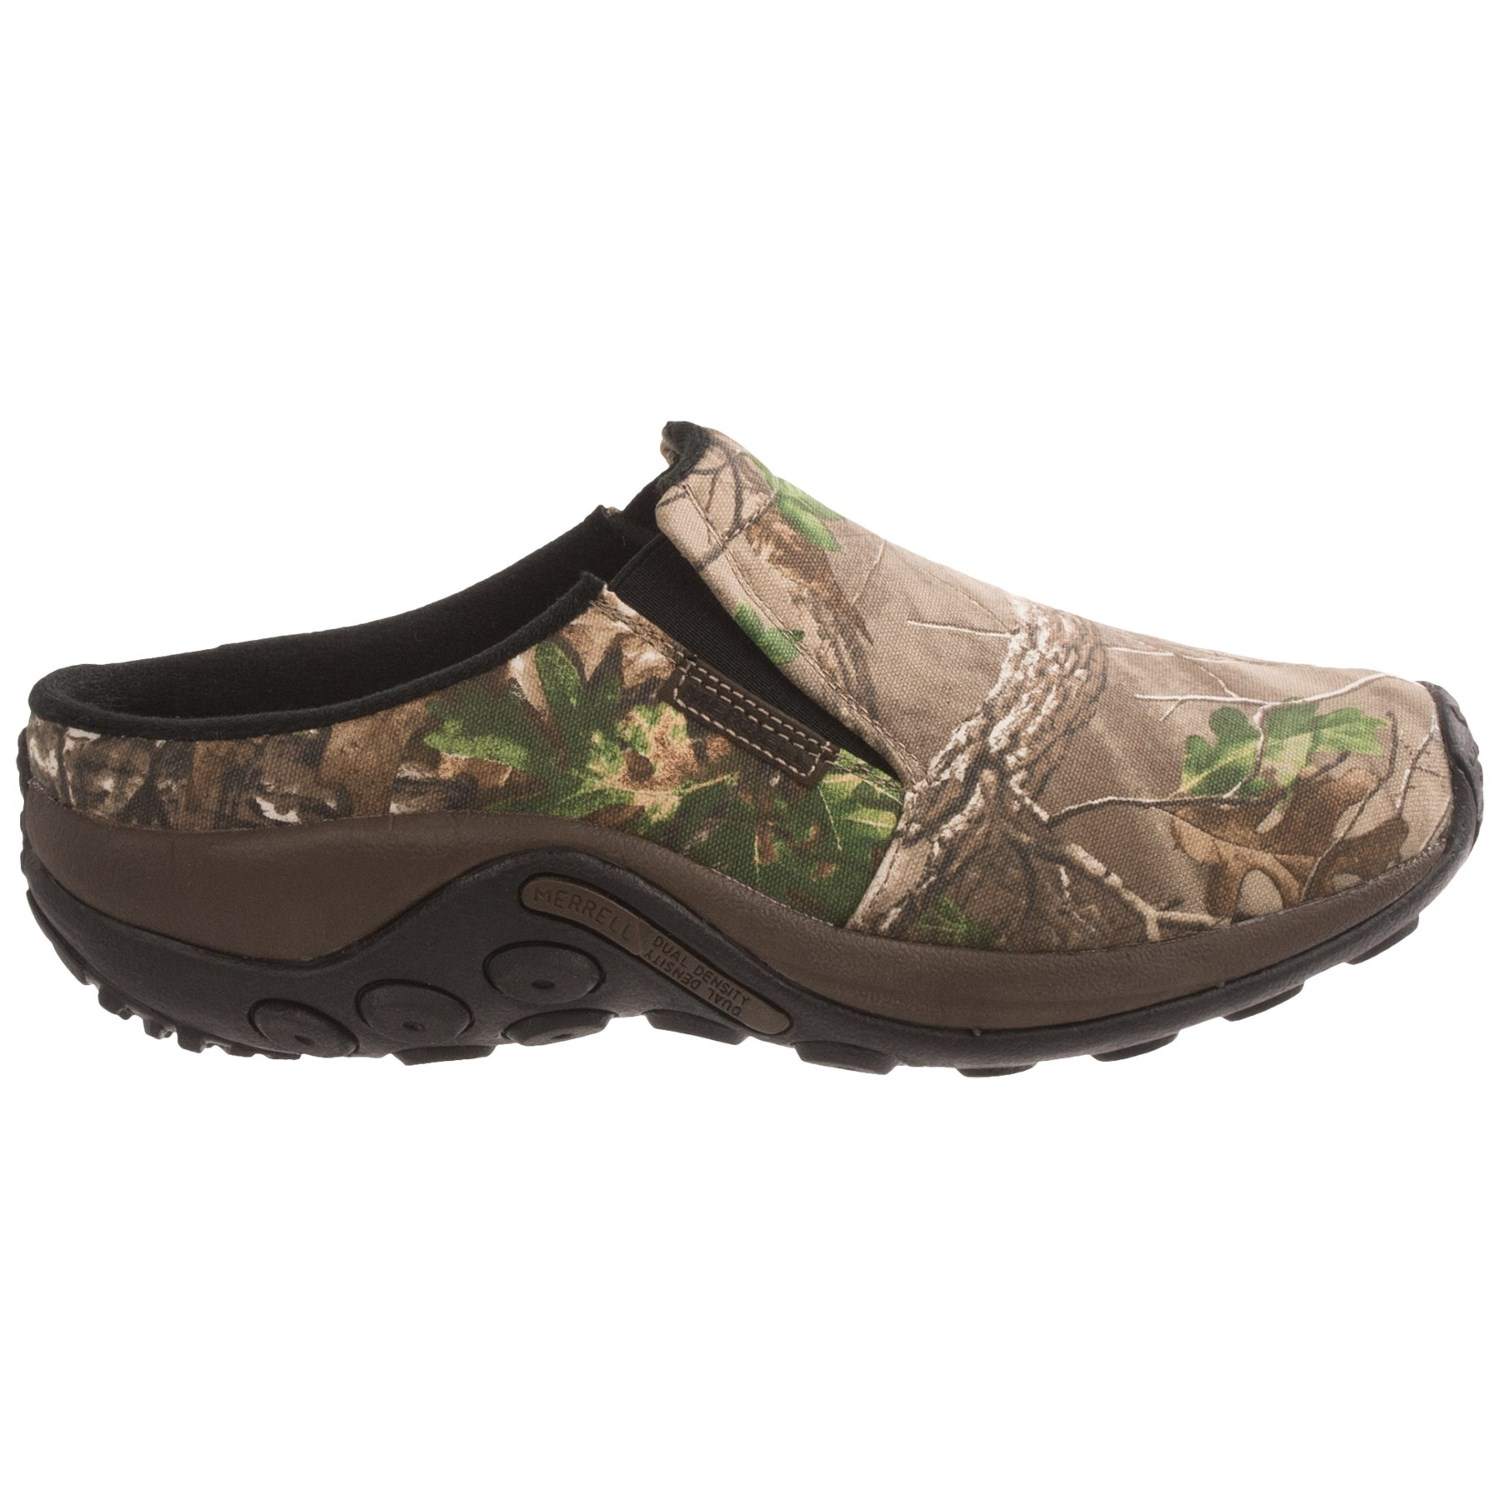 Merrell Jungle Slide Camo Shoes Slip Ons For Men